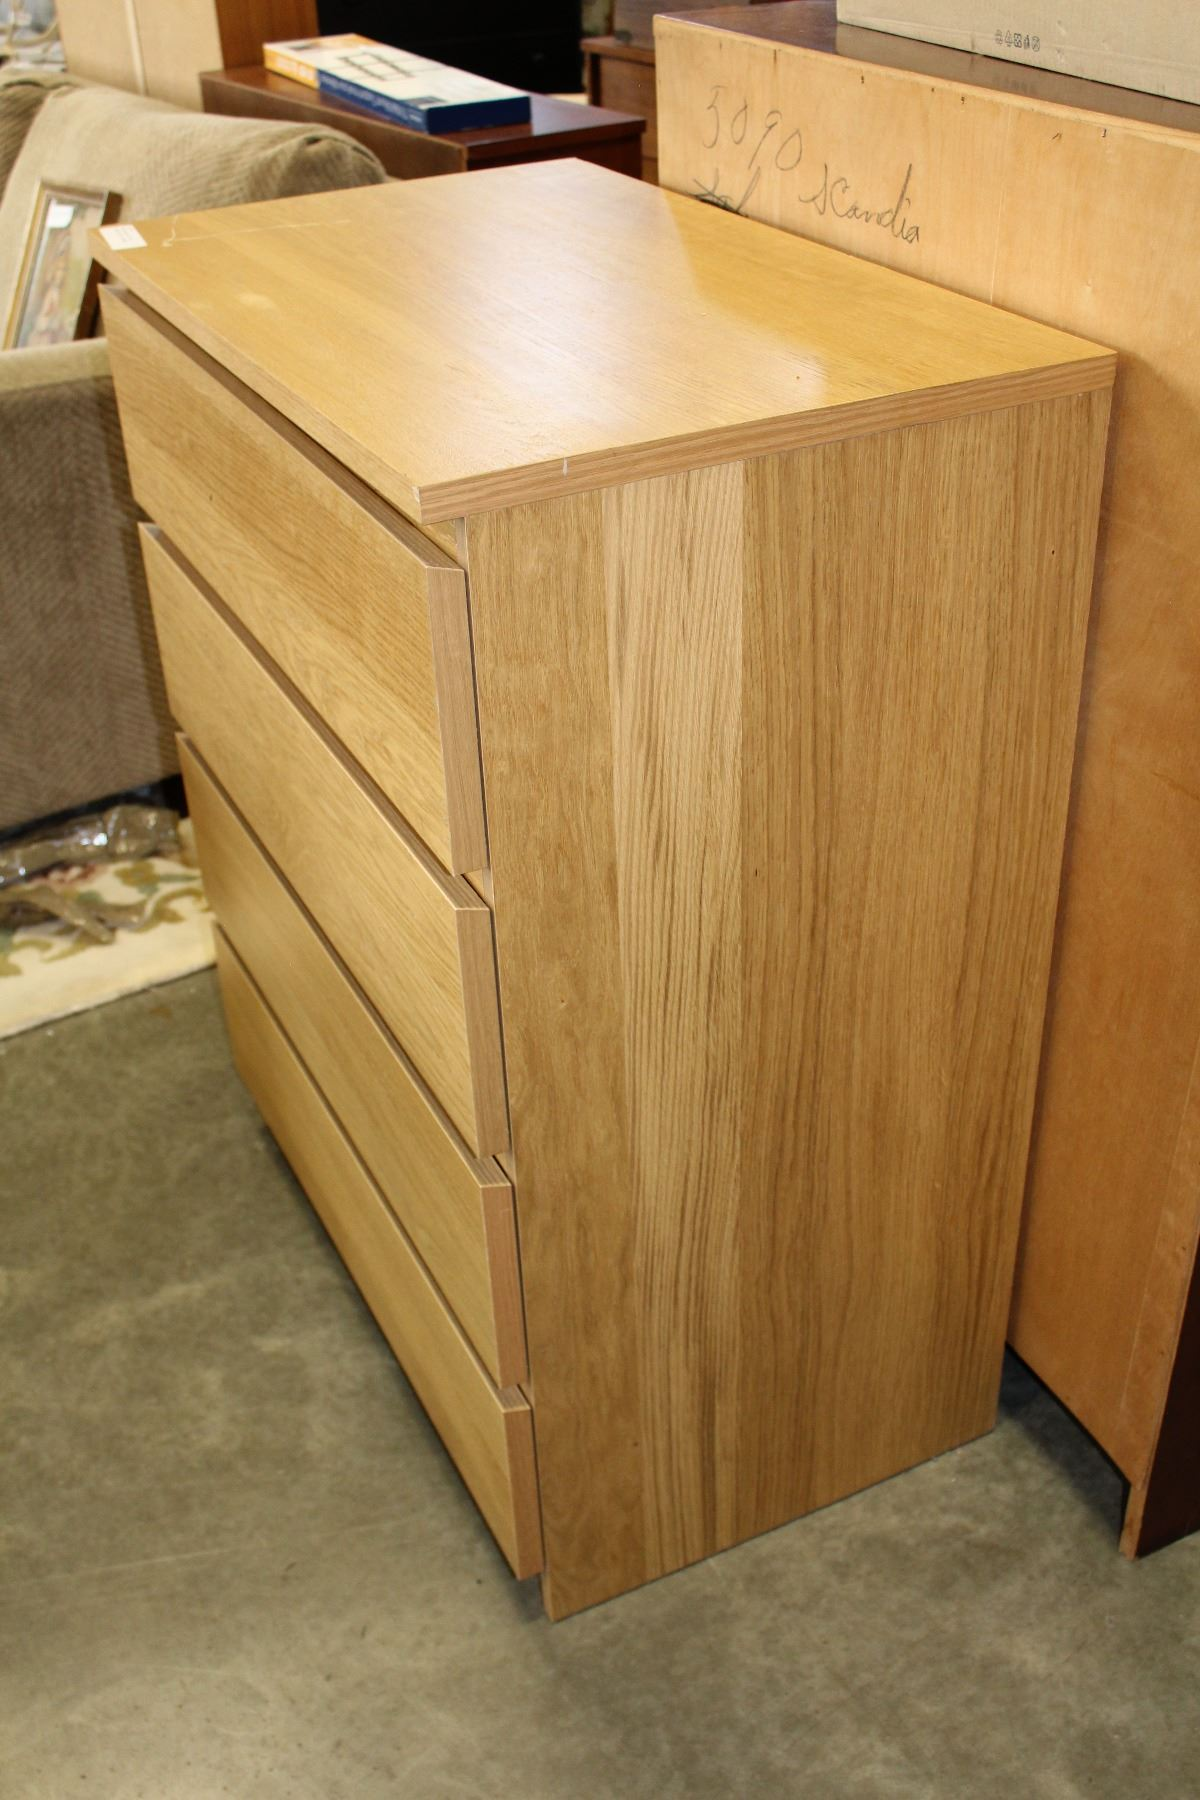 Ikea Malm Maople Finish 4 Drawer Chest Of Drawers